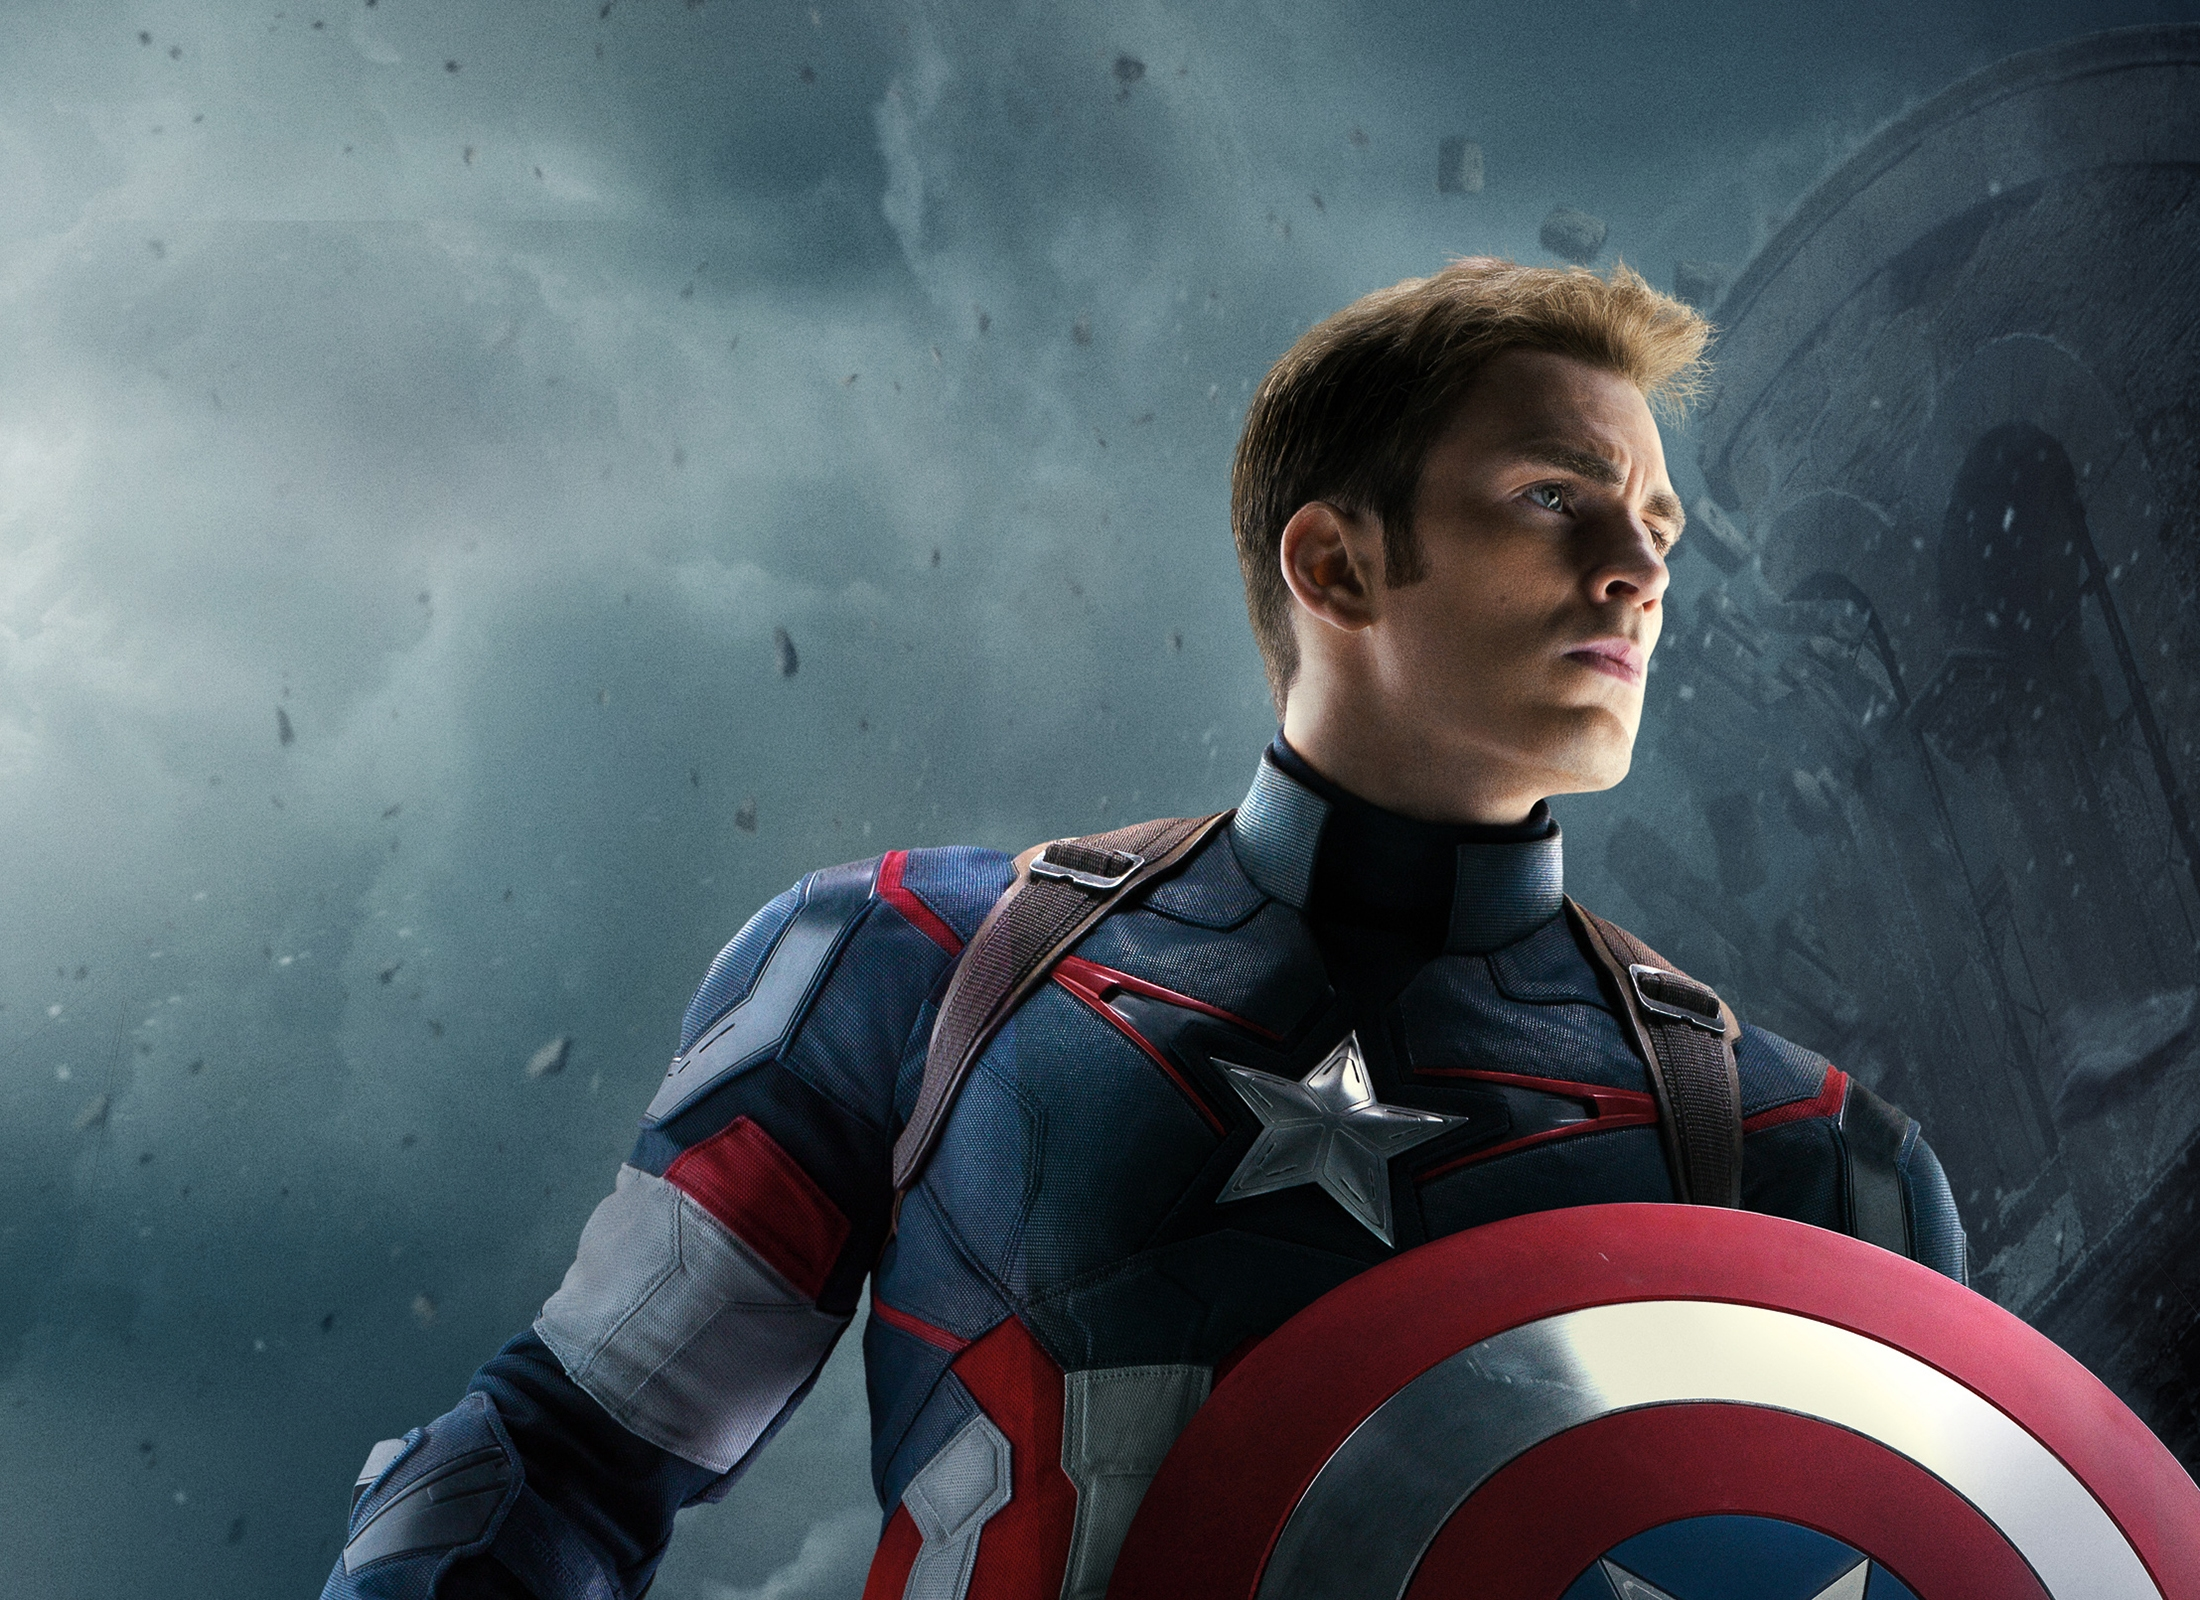 Wallpaper Stone 3d Captain America Wallpapers Free Download